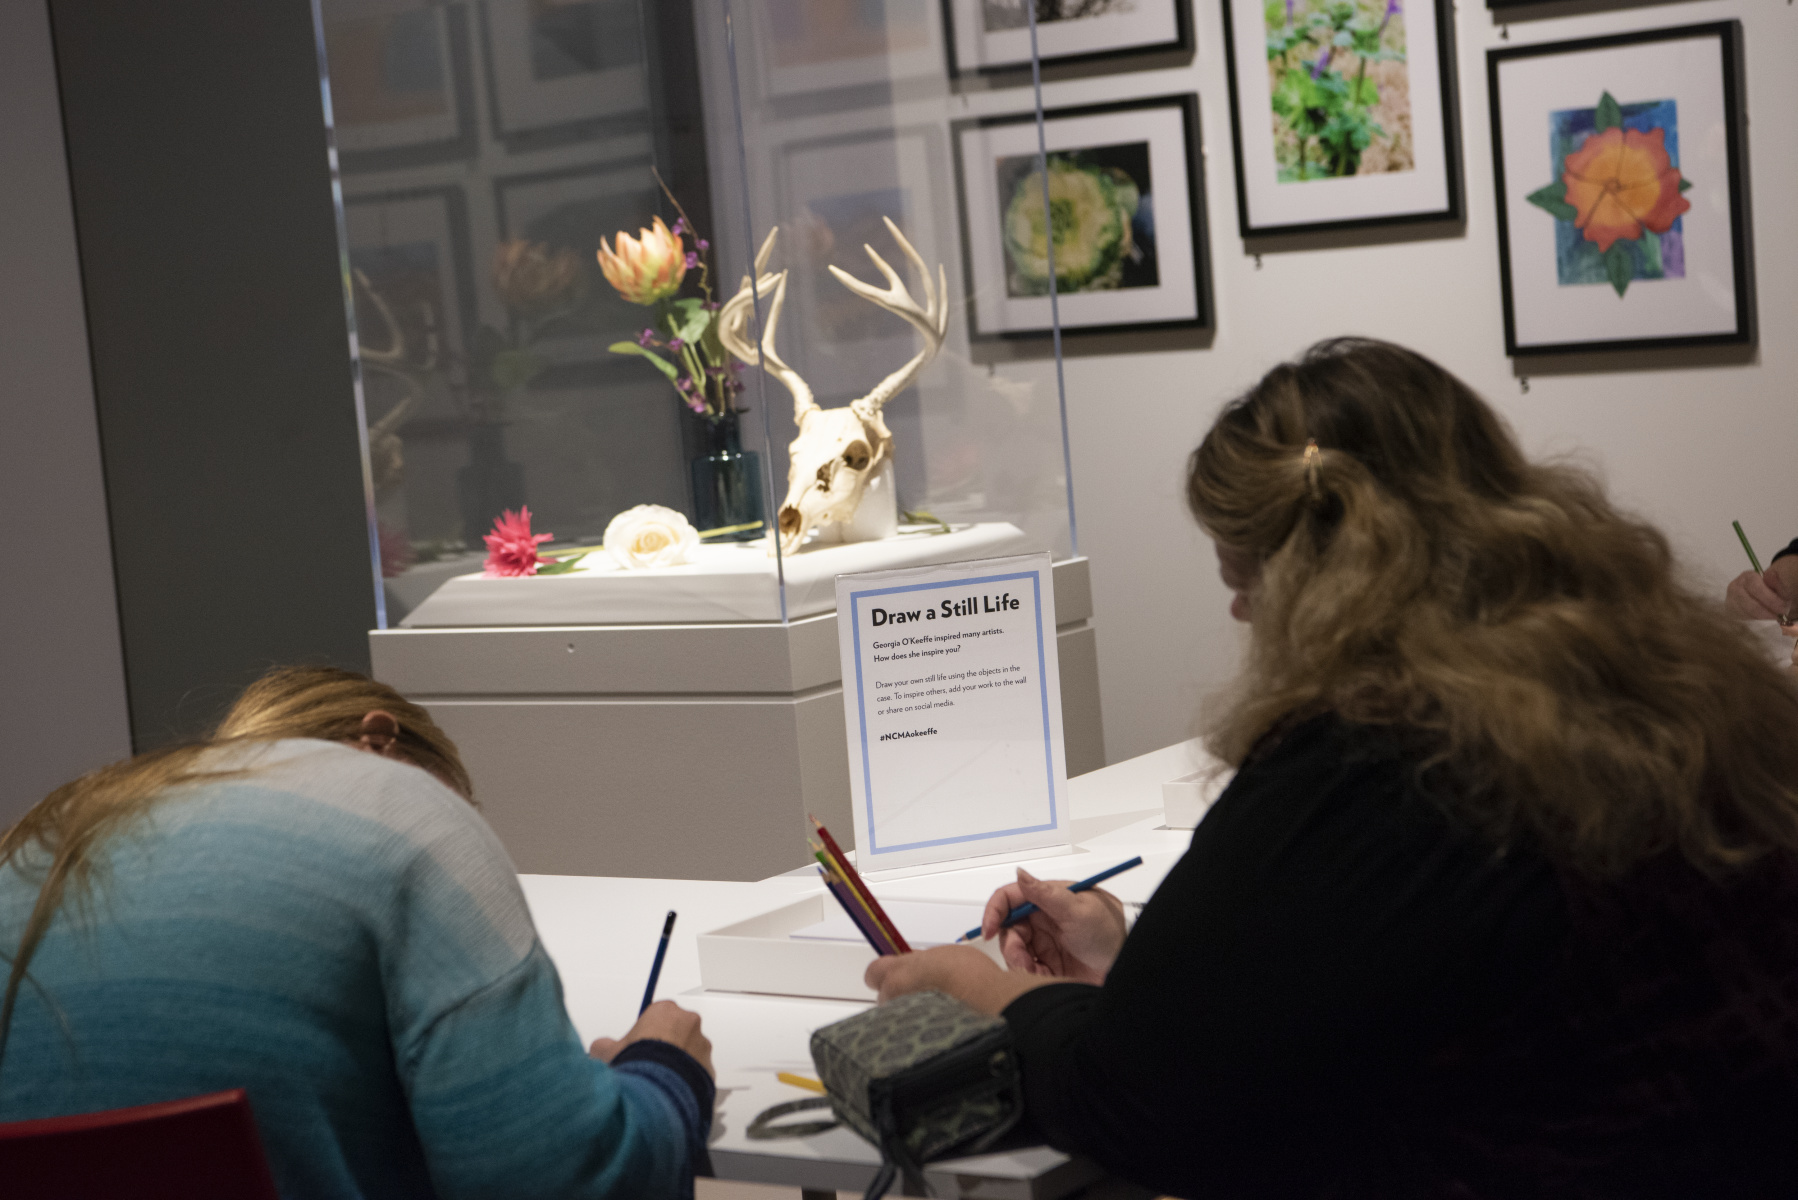 Exhibition visitors create their own art in a drawing studio at the end of a Georgia O'Keeffe exhibition.